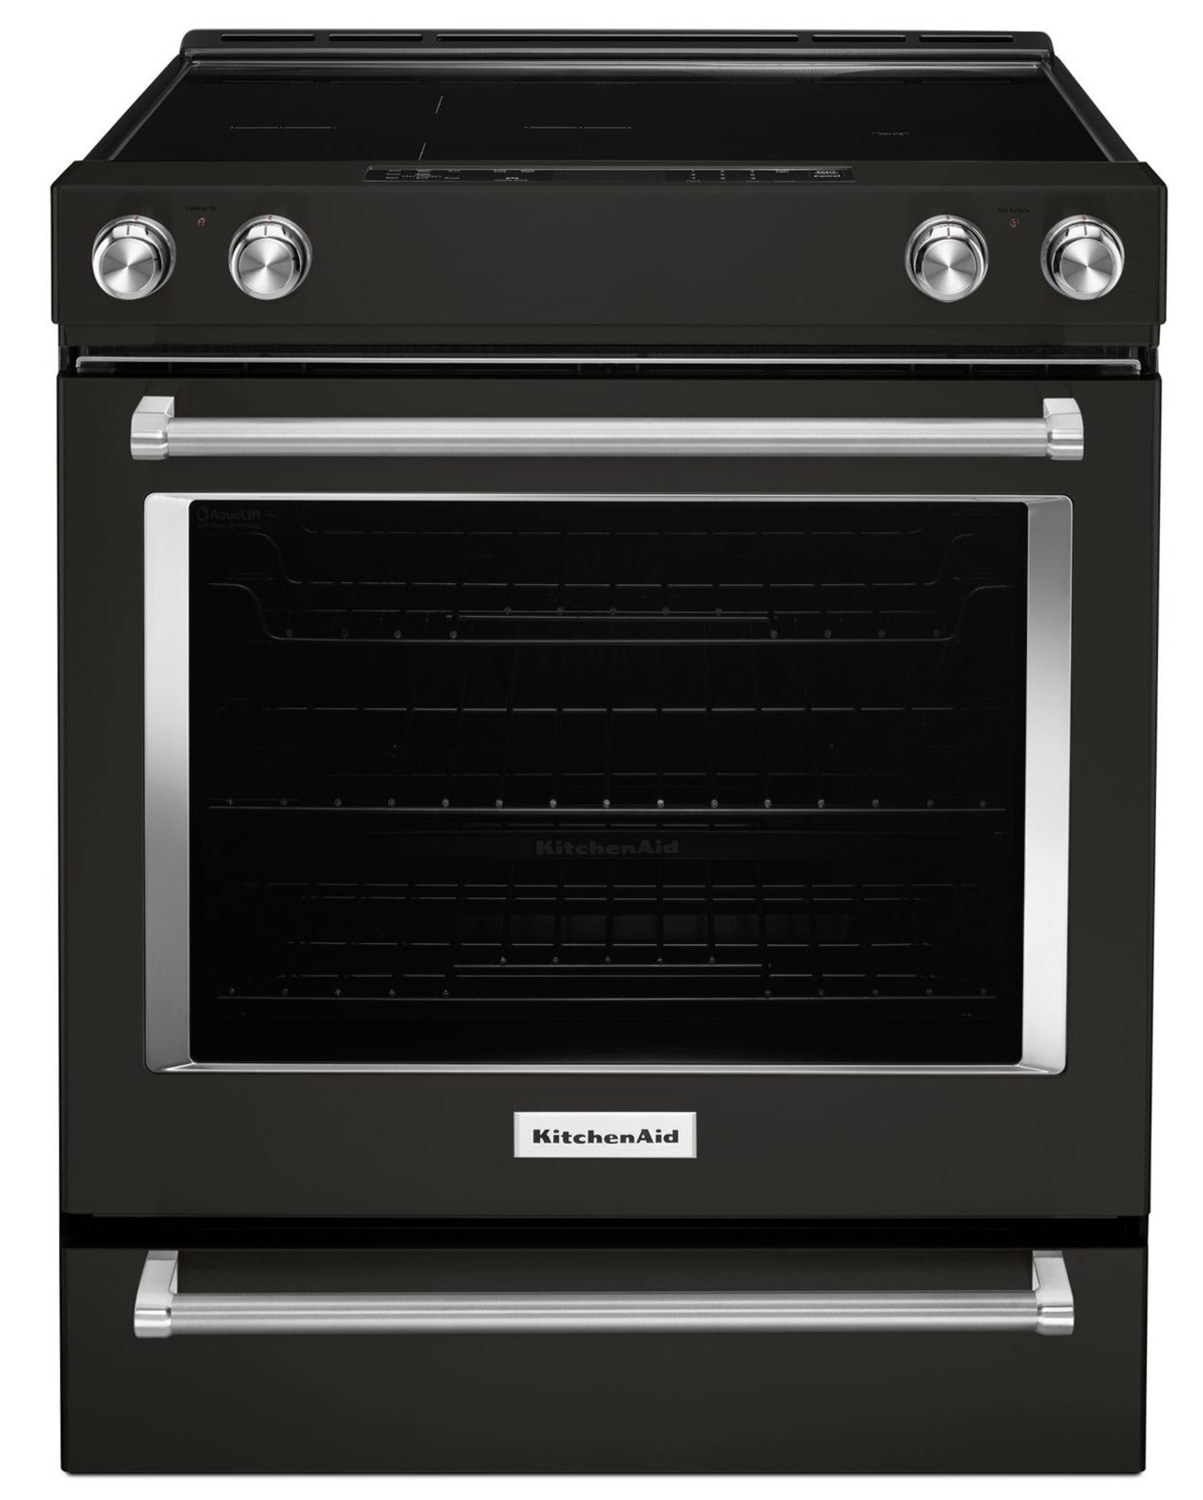 Uncategorized Appliance Parts Kitchener ranges leons kitchenaid black stainless steel slide in electric convection range 6 4 cu ft